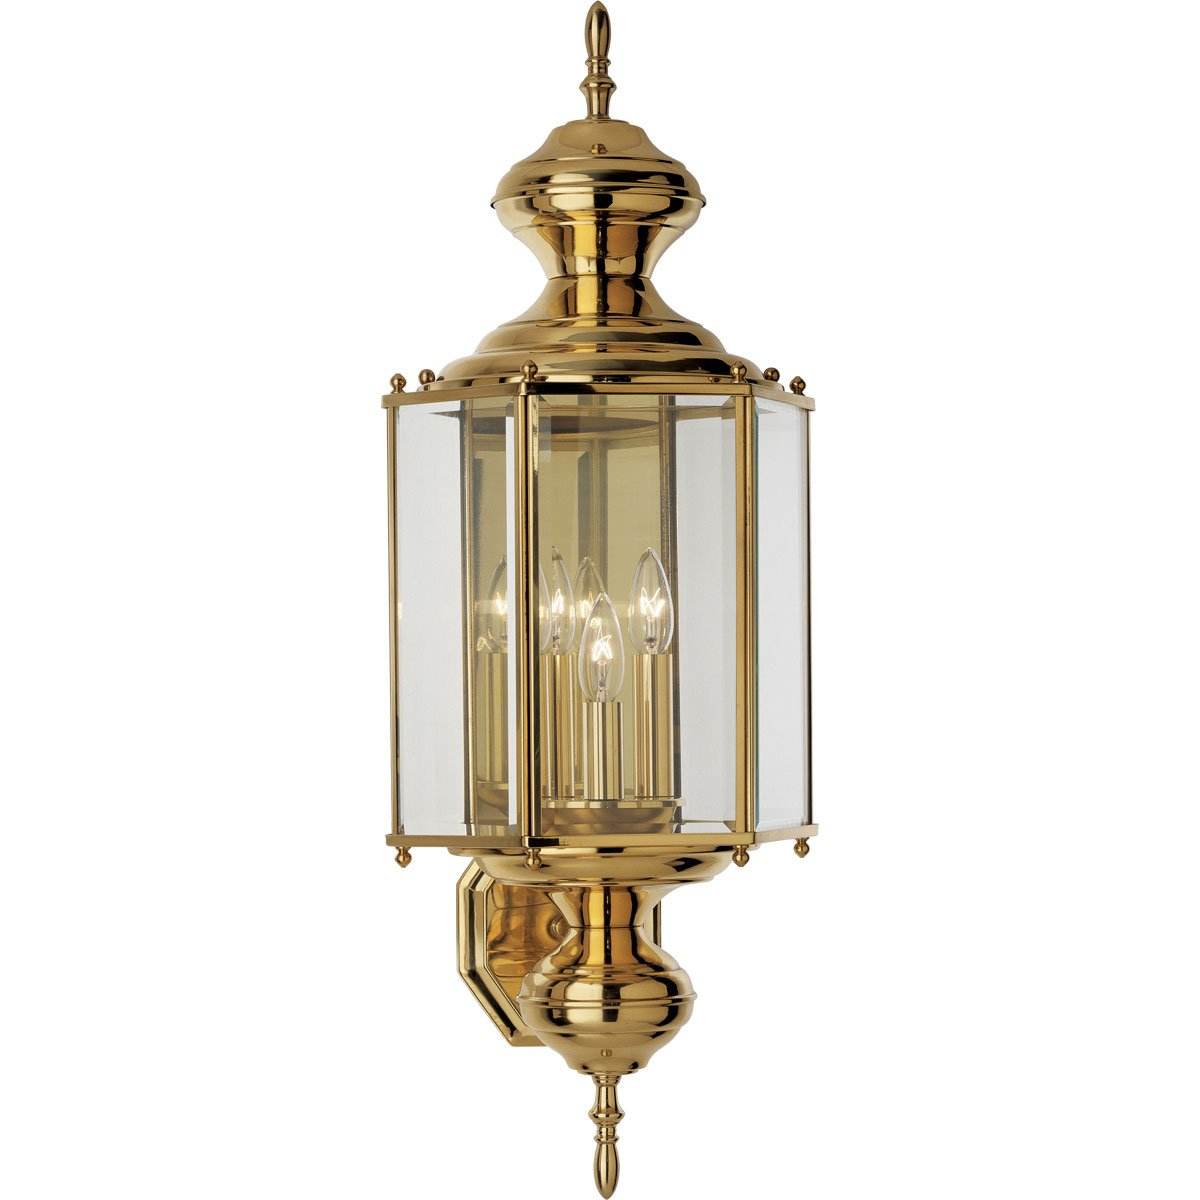 Progress lighting p5730 10 hexagonal wall lantern with clear progress lighting p5730 10 hexagonal wall lantern with clear beveled glass and brassguard finish polished brass wall porch lights amazon arubaitofo Choice Image